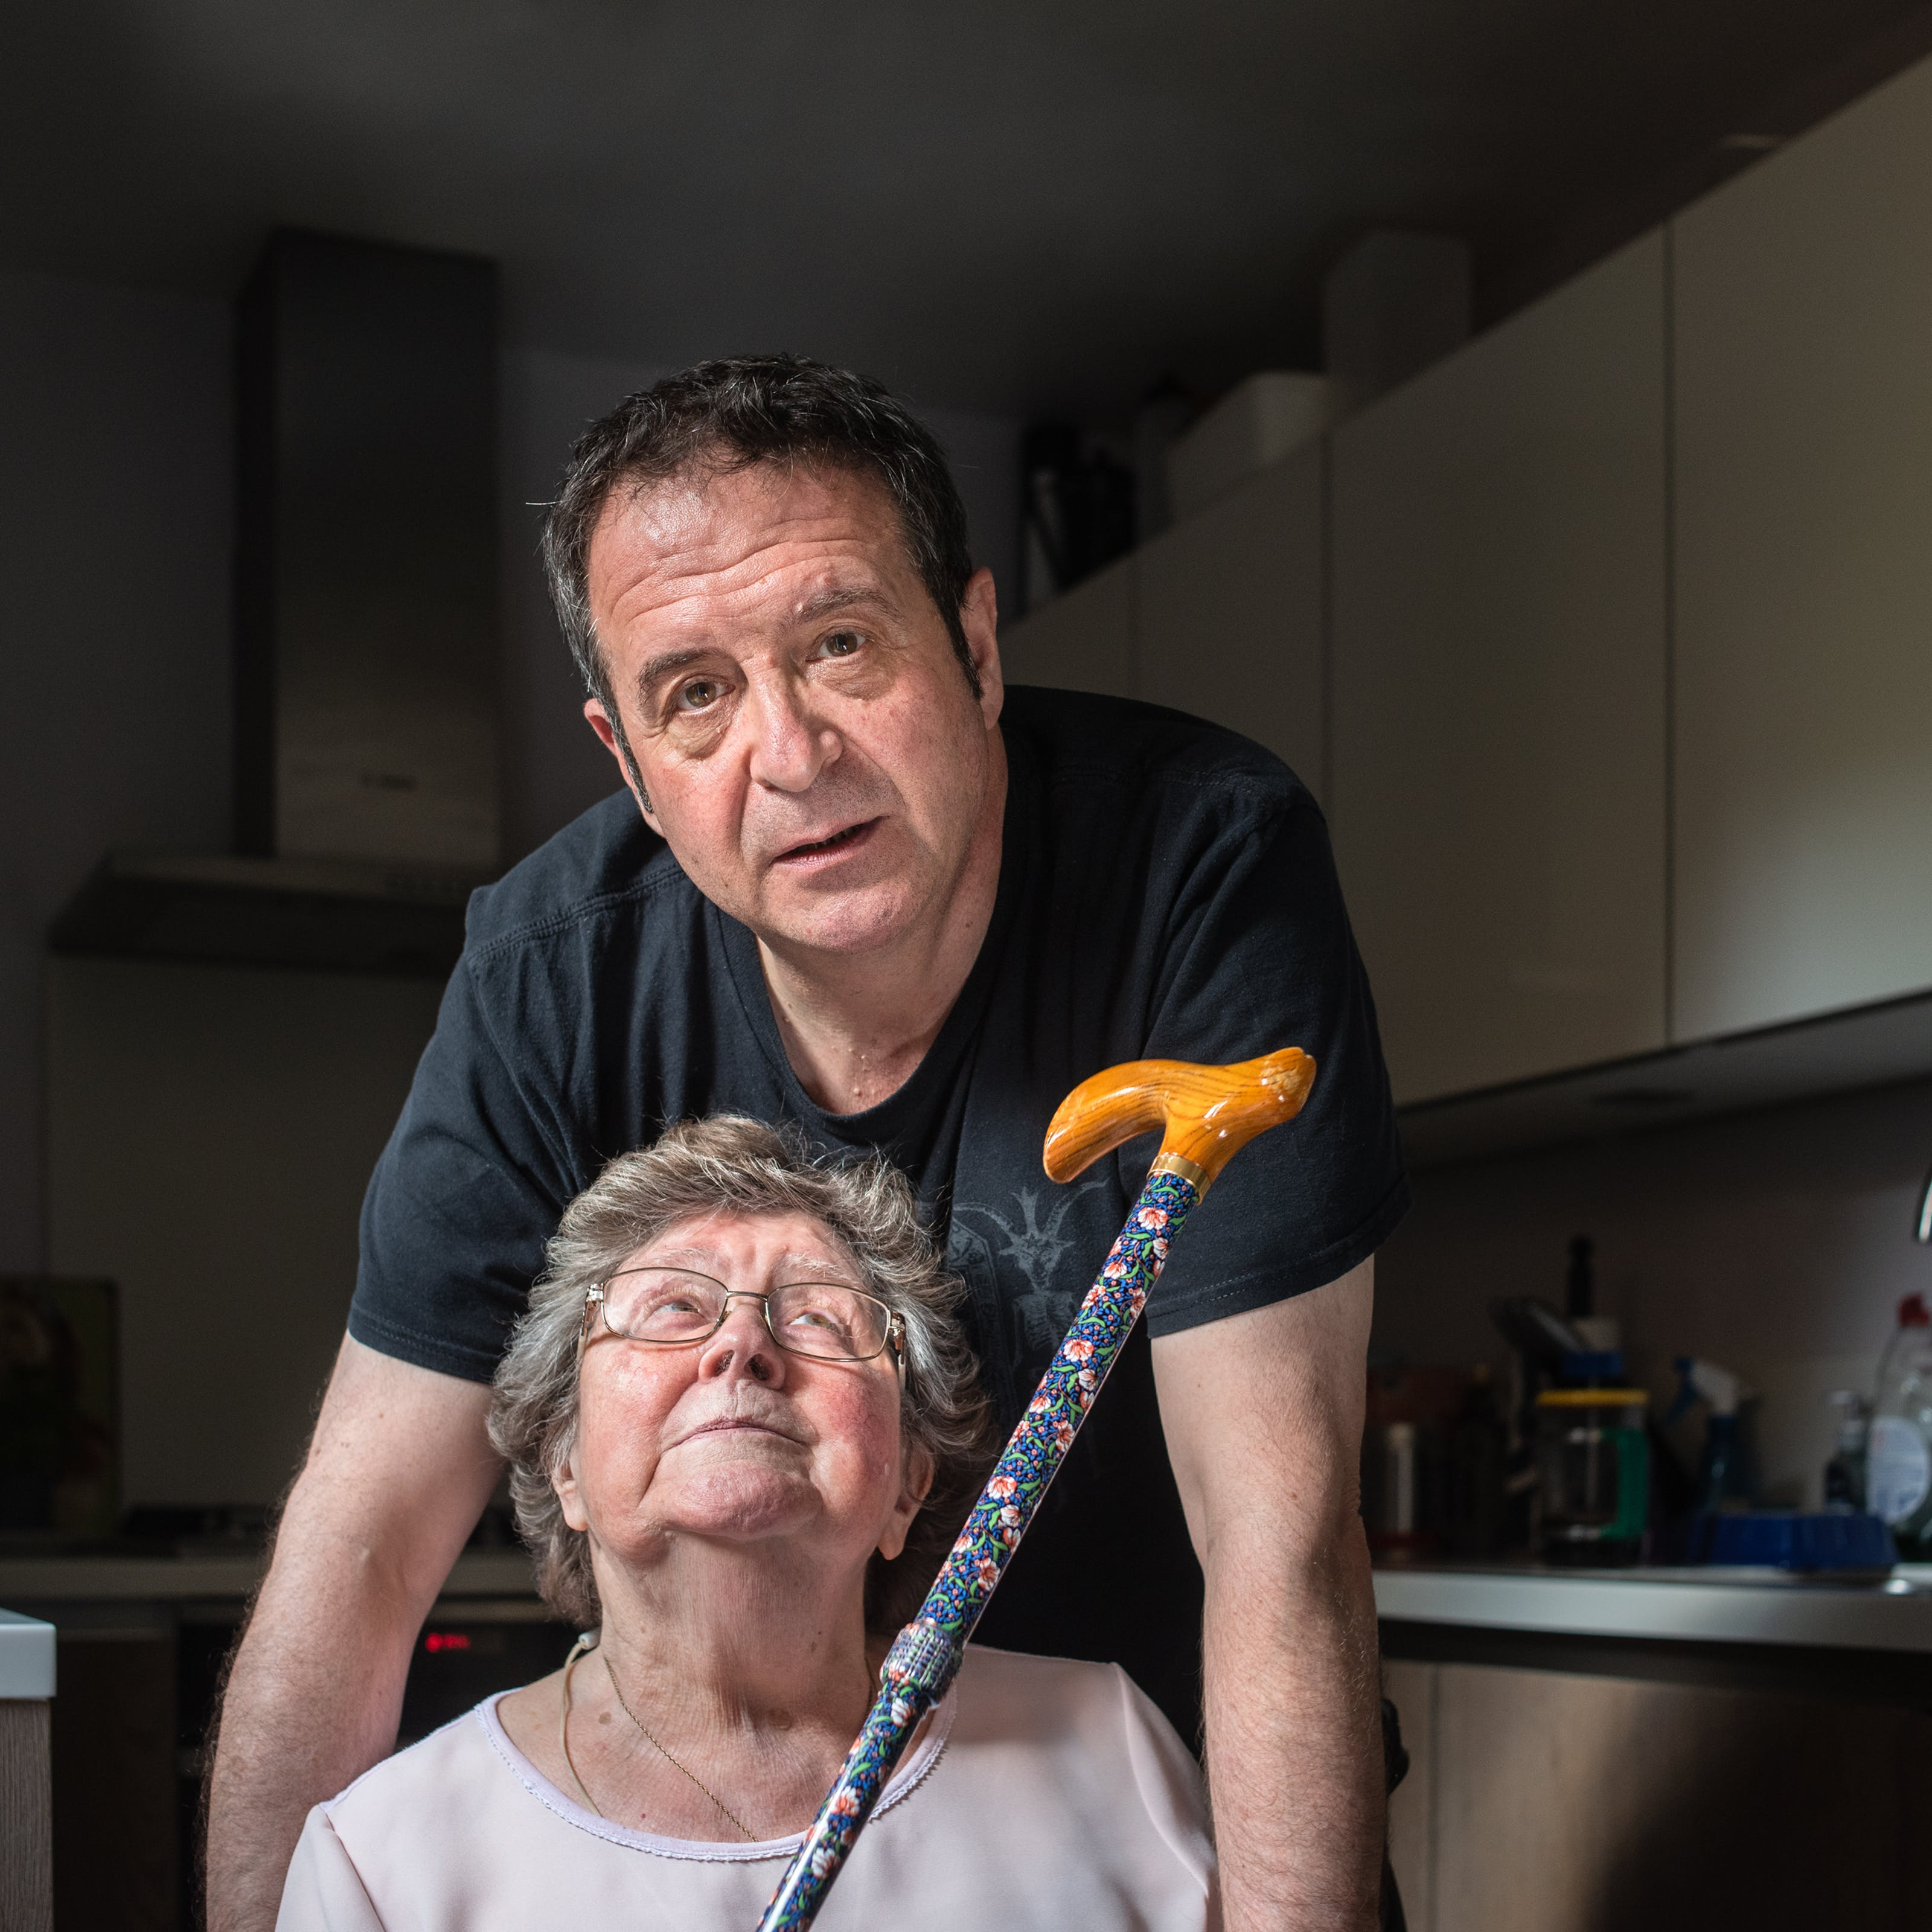 Photograph of a man and his mother in a kitchen. The man wearing a black t-shirt is stood behind his mother who is sitting on a chair. The man is looking straight to camera, leaning slightly forward, his arms resting on the arms of the chair which are out of shot. His mother is wearing a pink blouse and is looking vertically upwards towards him. She is holding her walking stick up towards him, handle end first. In the background are kitchen units, a Tupperware box of biscuits and the tap of the sink.